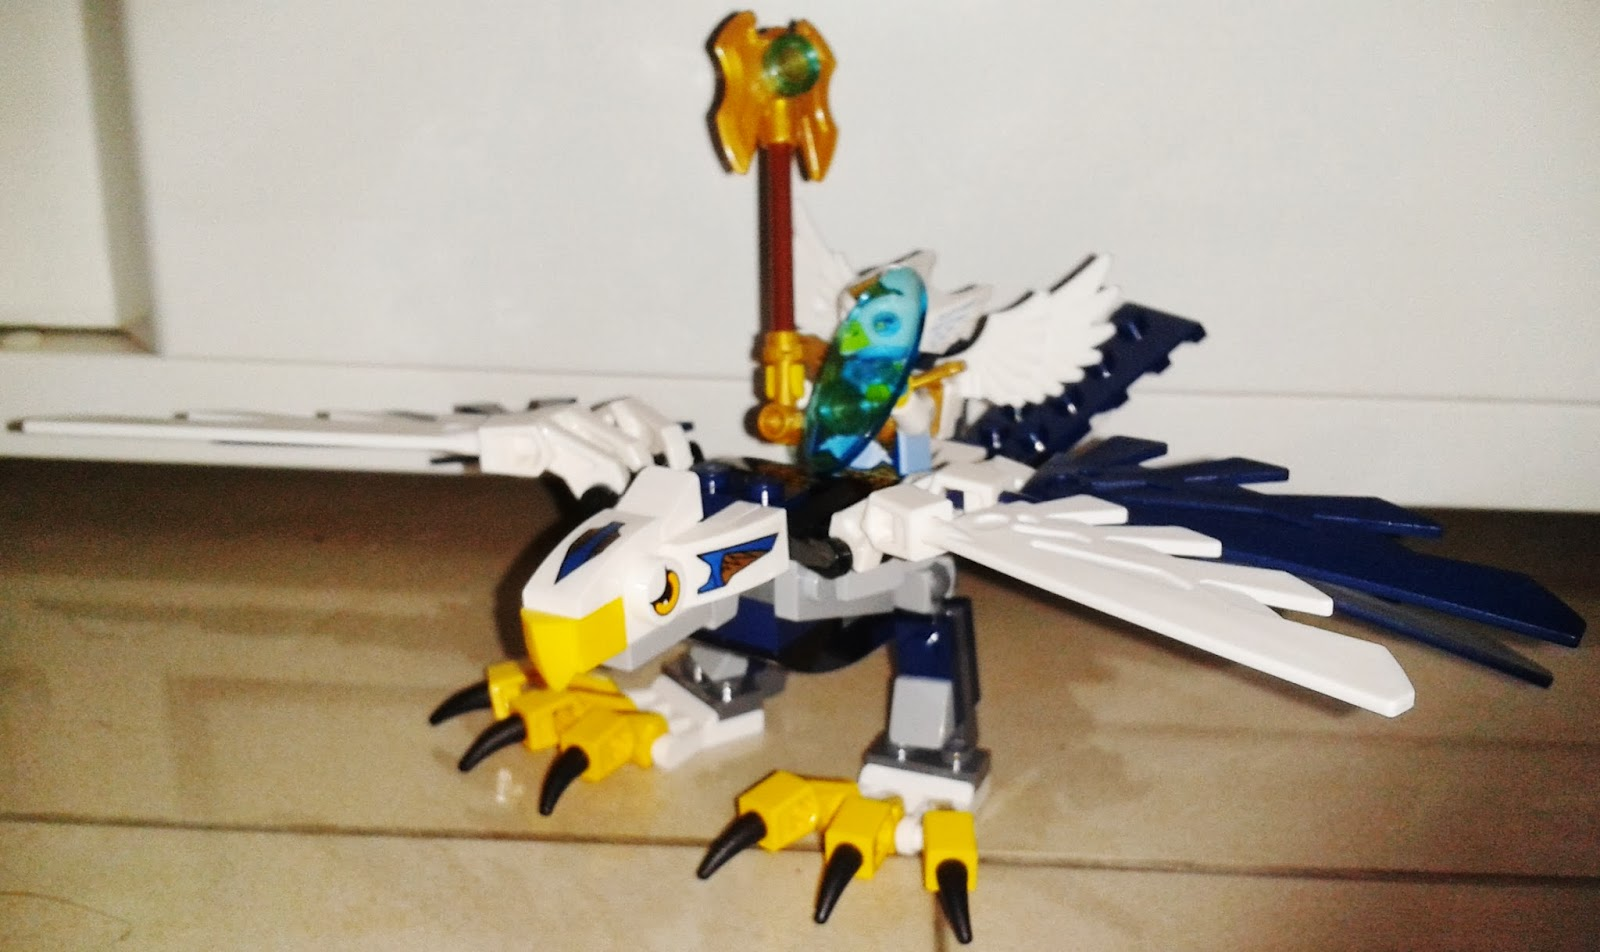 lego chima eagle legend beast - photo #11